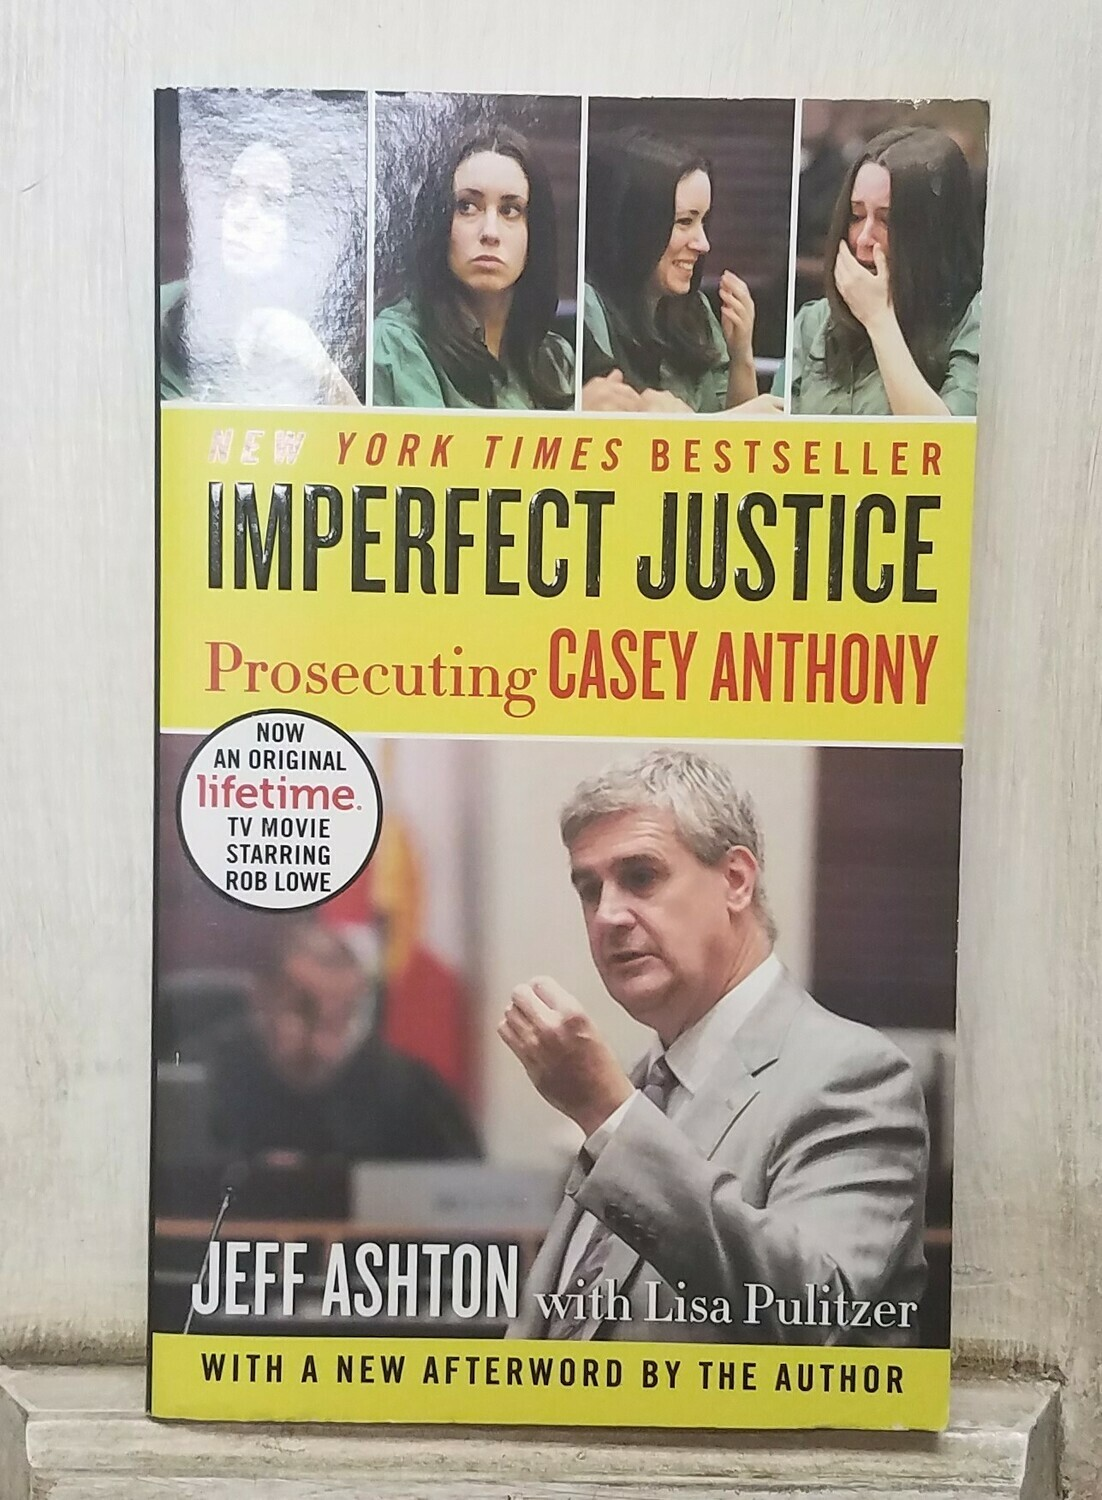 Imperfect Justice: Prosecuting Casey Anthony by Jeff Ashton with Lisa Pulitzer